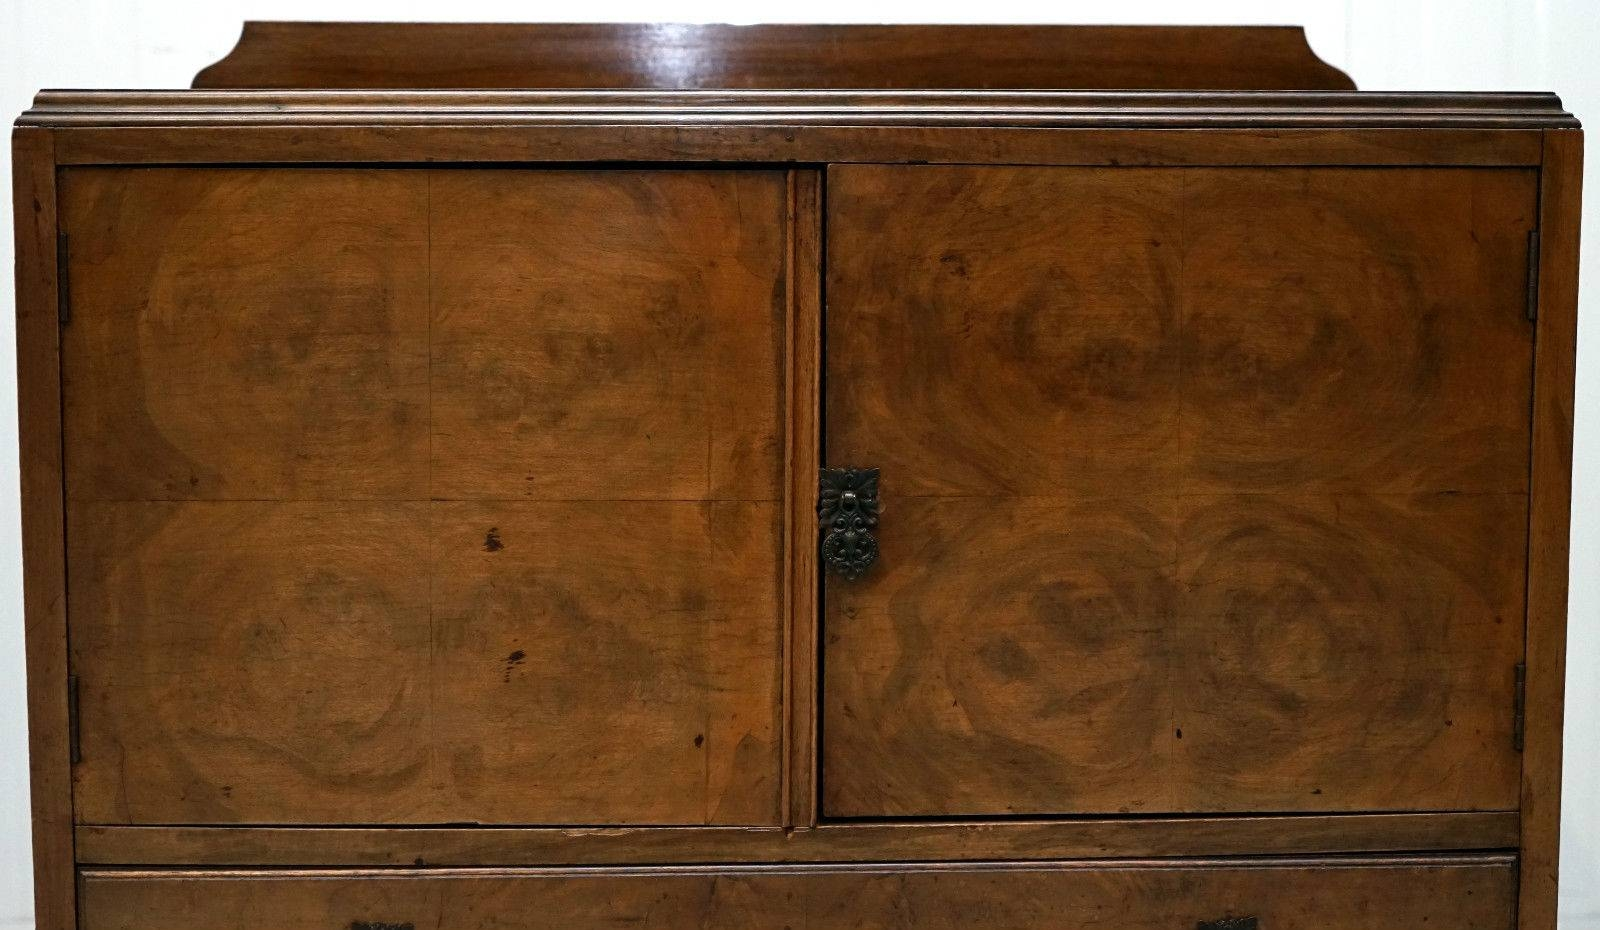 Queen Anne Walnut Small Sideboard Cabinet With Carved Cabriole throughout Small Sideboard Cabinets (Image 16 of 30)